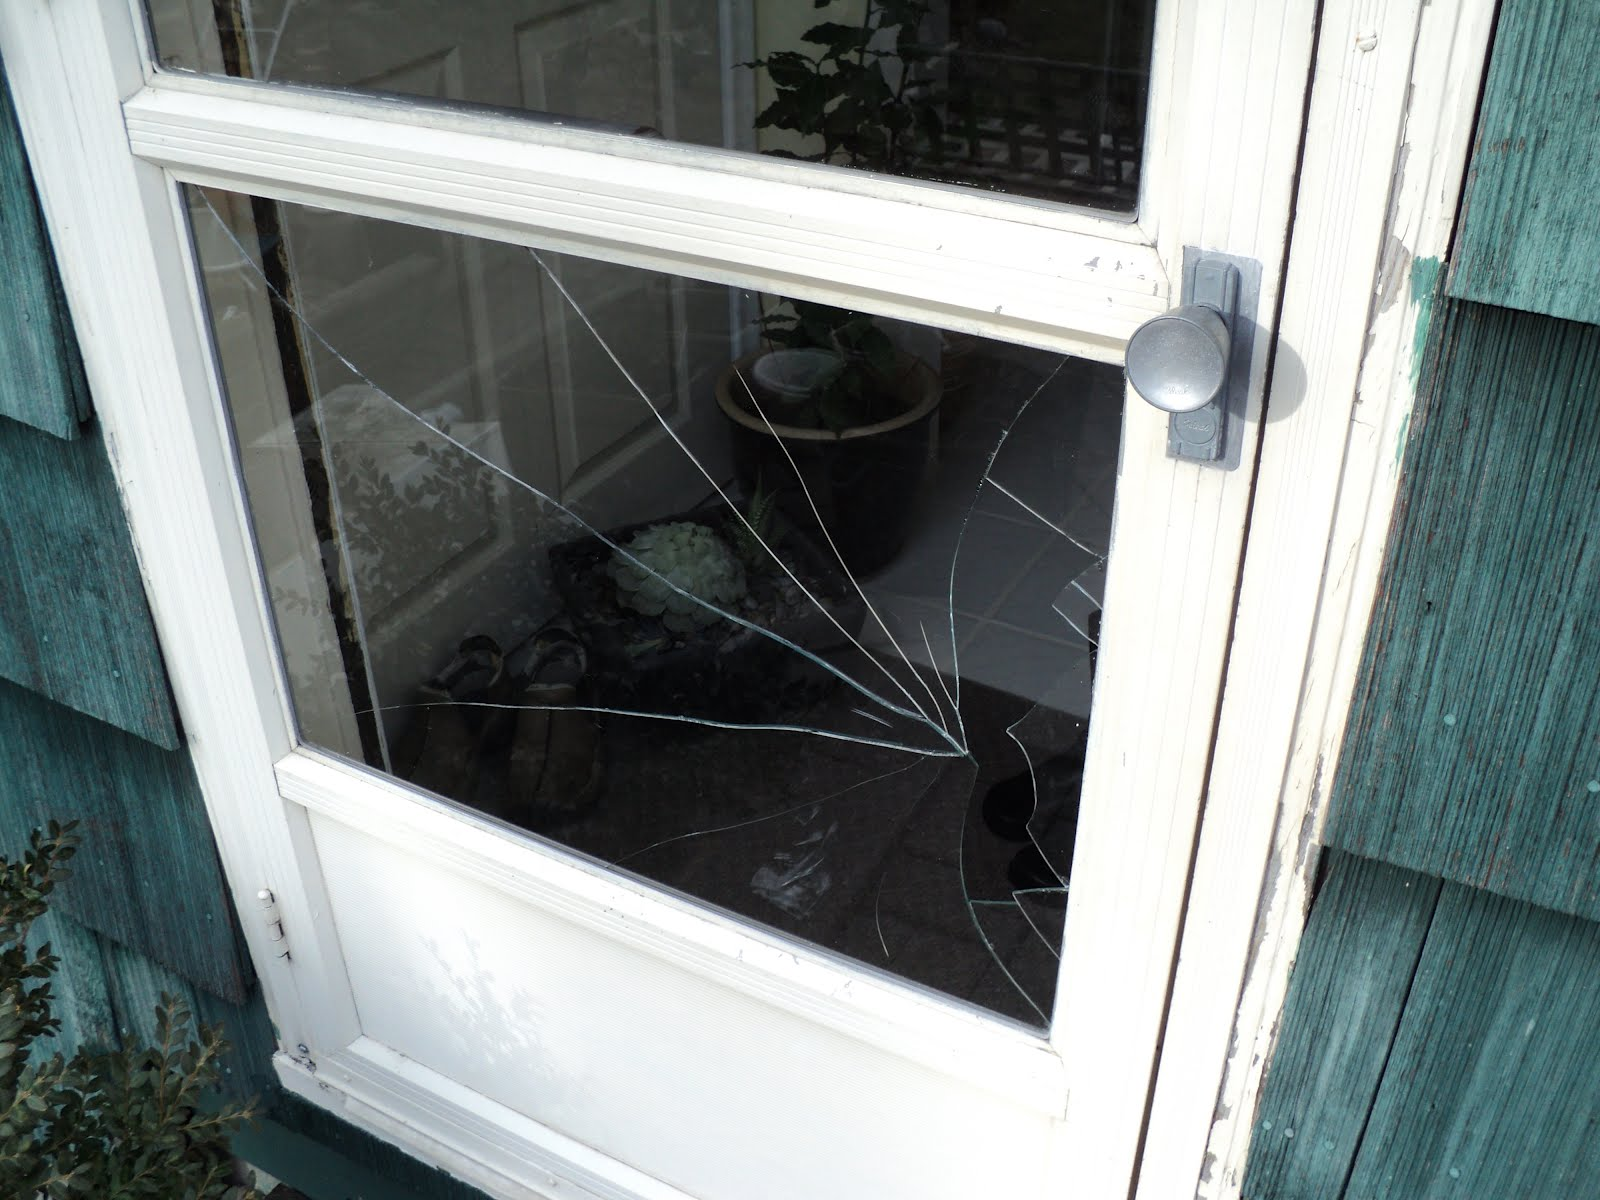 A Storm Door Broken Window Repair